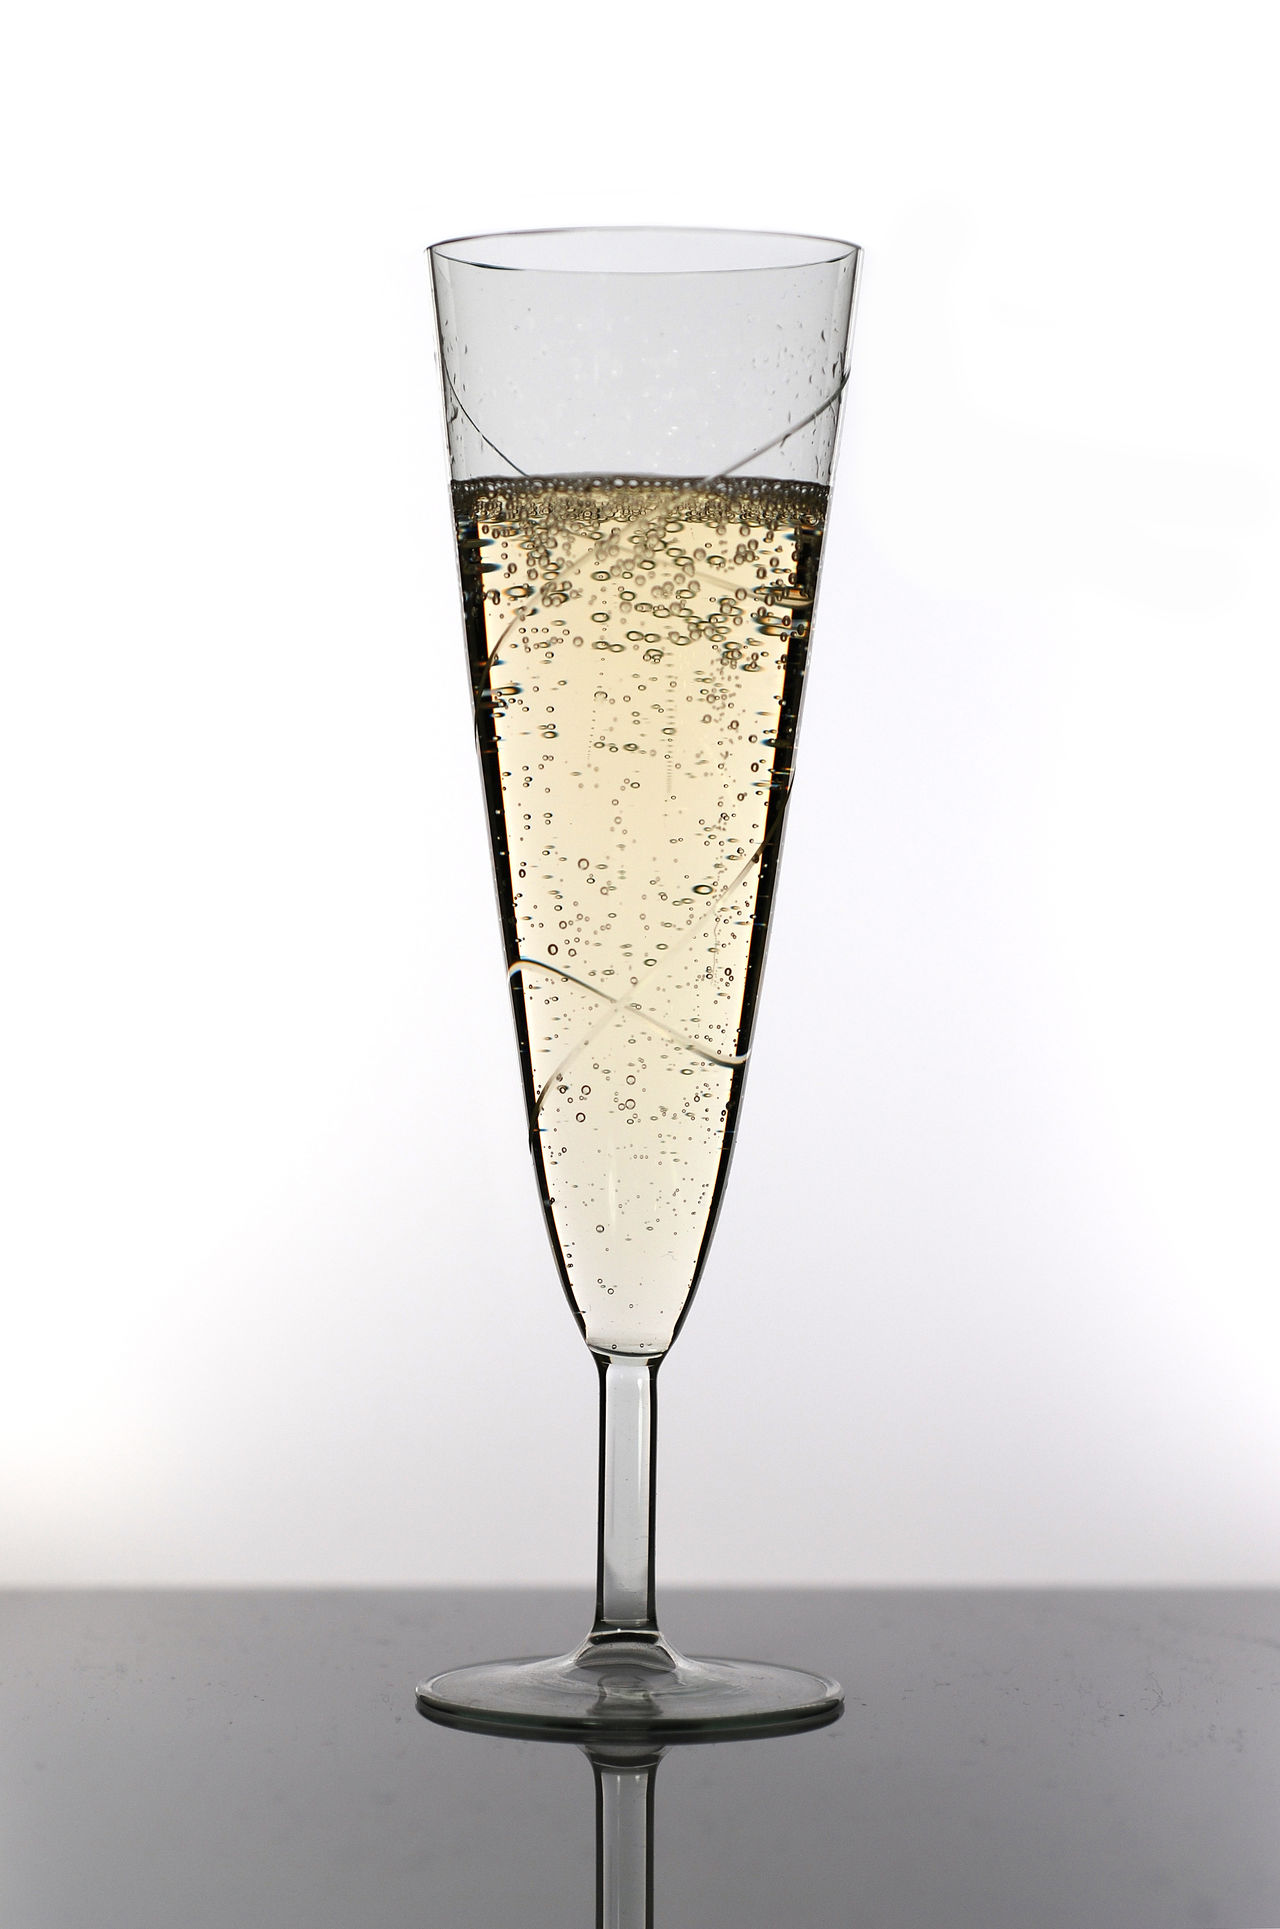 Champagne glass Alcohol Bubble Carbonic Acid Celebrate Champagne Champagne Flute Champagne Glasses Close-up Drink Drinking Glass Glass Luxury New Year's Eve Party Prosecco Refreshment Sparkling Wine Stimulating Sylvester White Background